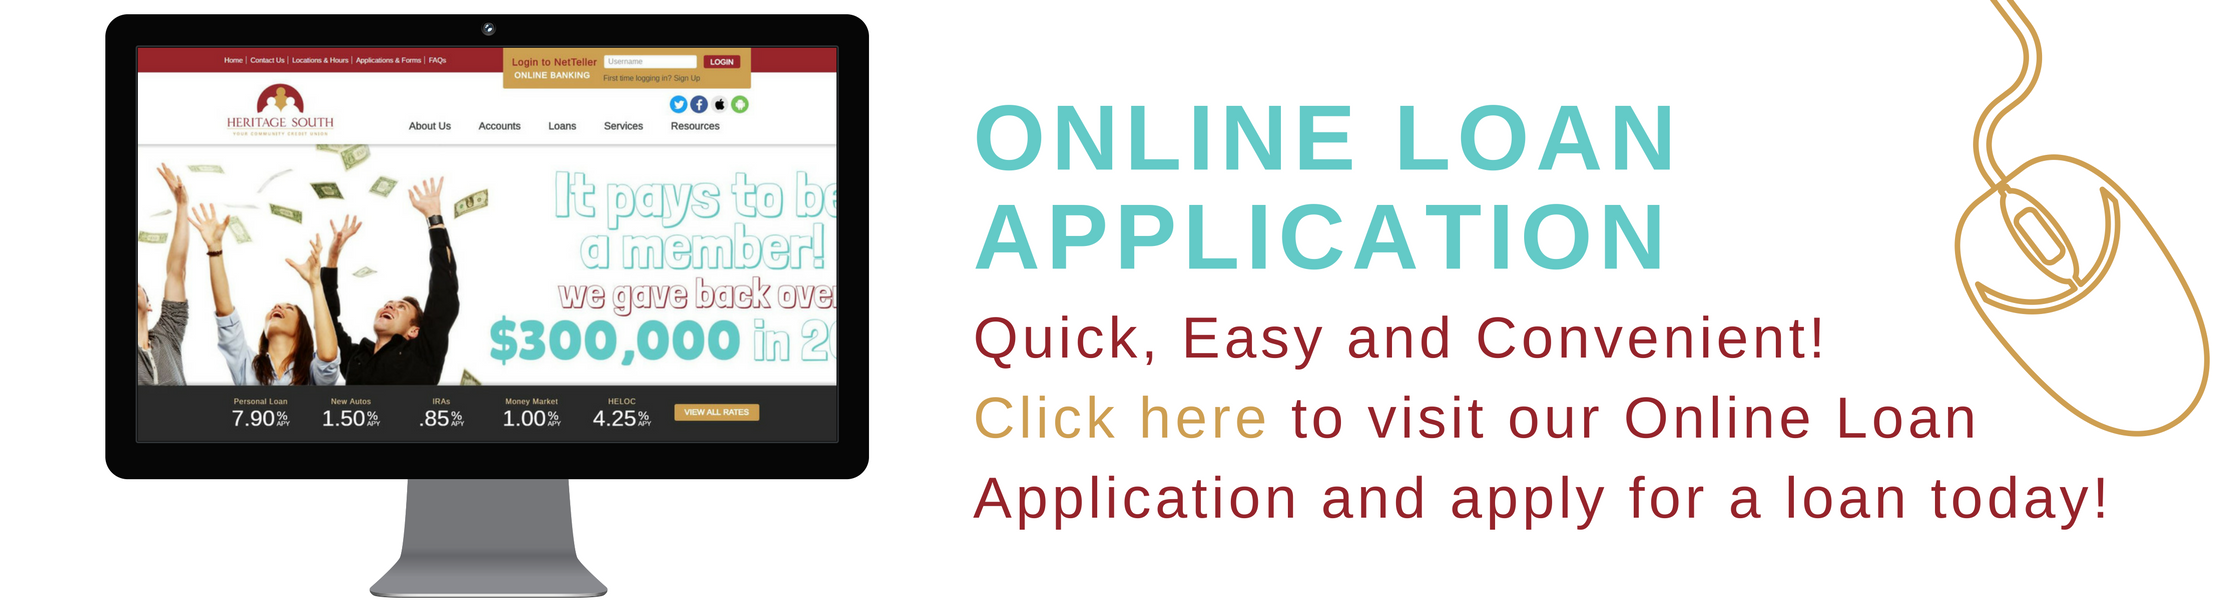 Online loan application. Quick, Easy and convenient. Click here to visit our Online loan application and apply for a loan today.